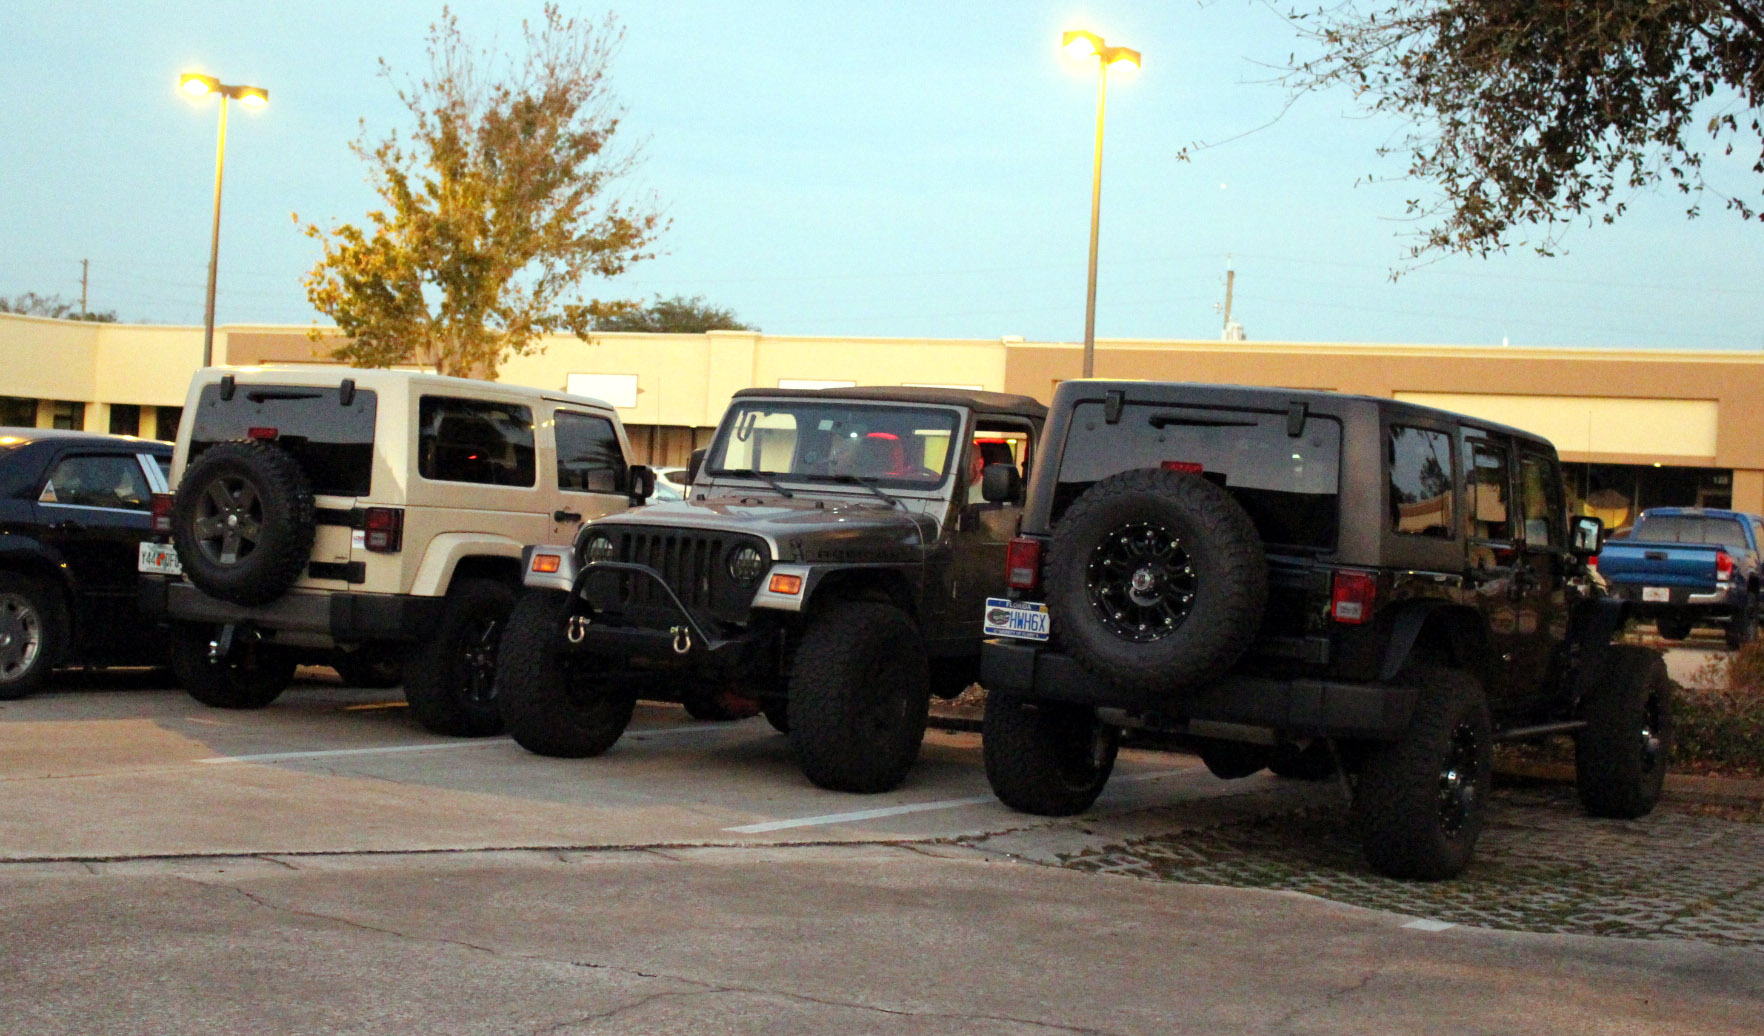 Small Jeeple gathering